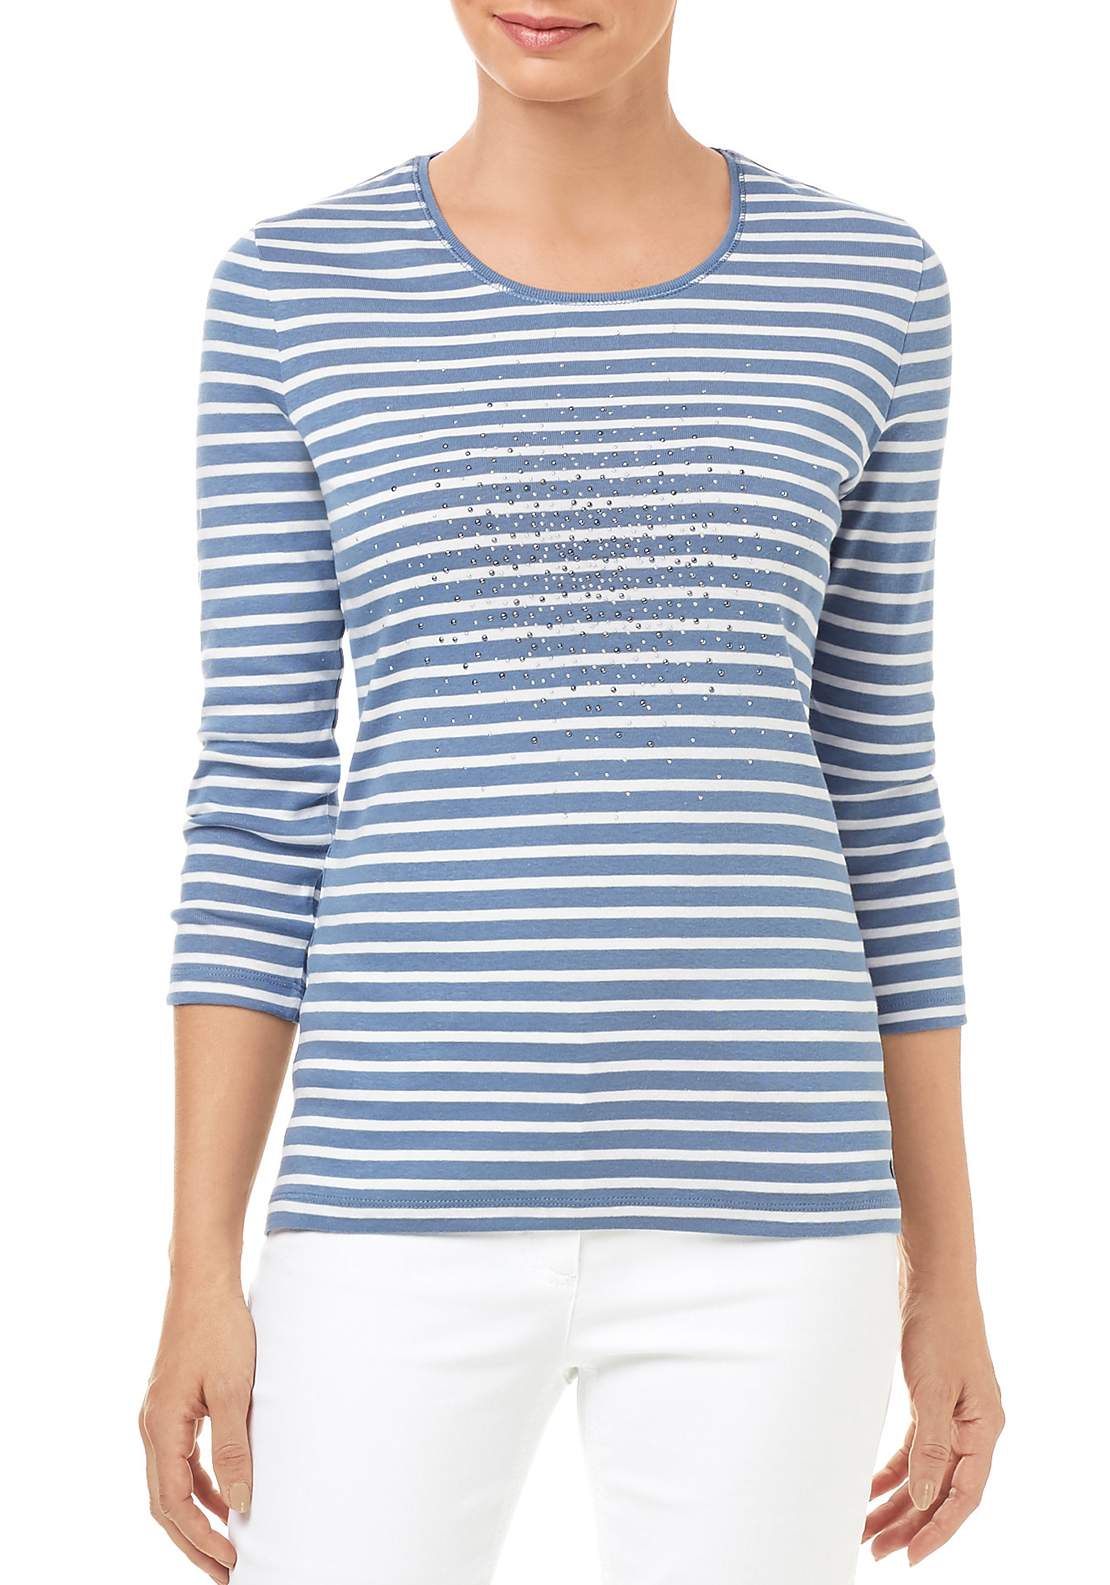 Gerry Weber Cotton Striped Top with Studded Design, Blue & White